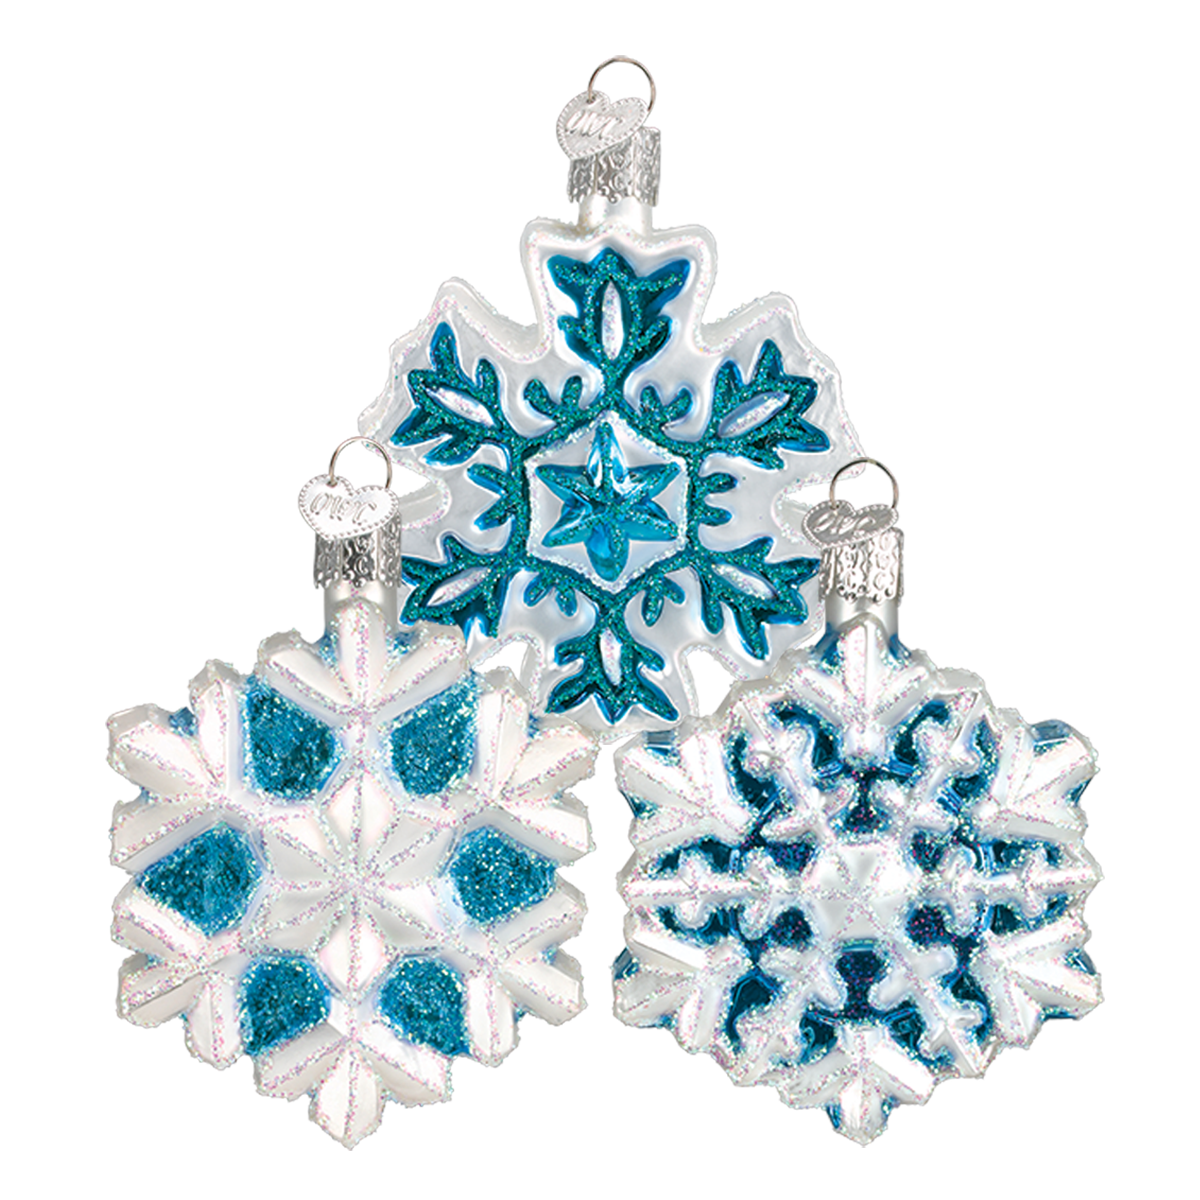 Old World Christmas Snowflake Glass Ornament | Putti Christmas